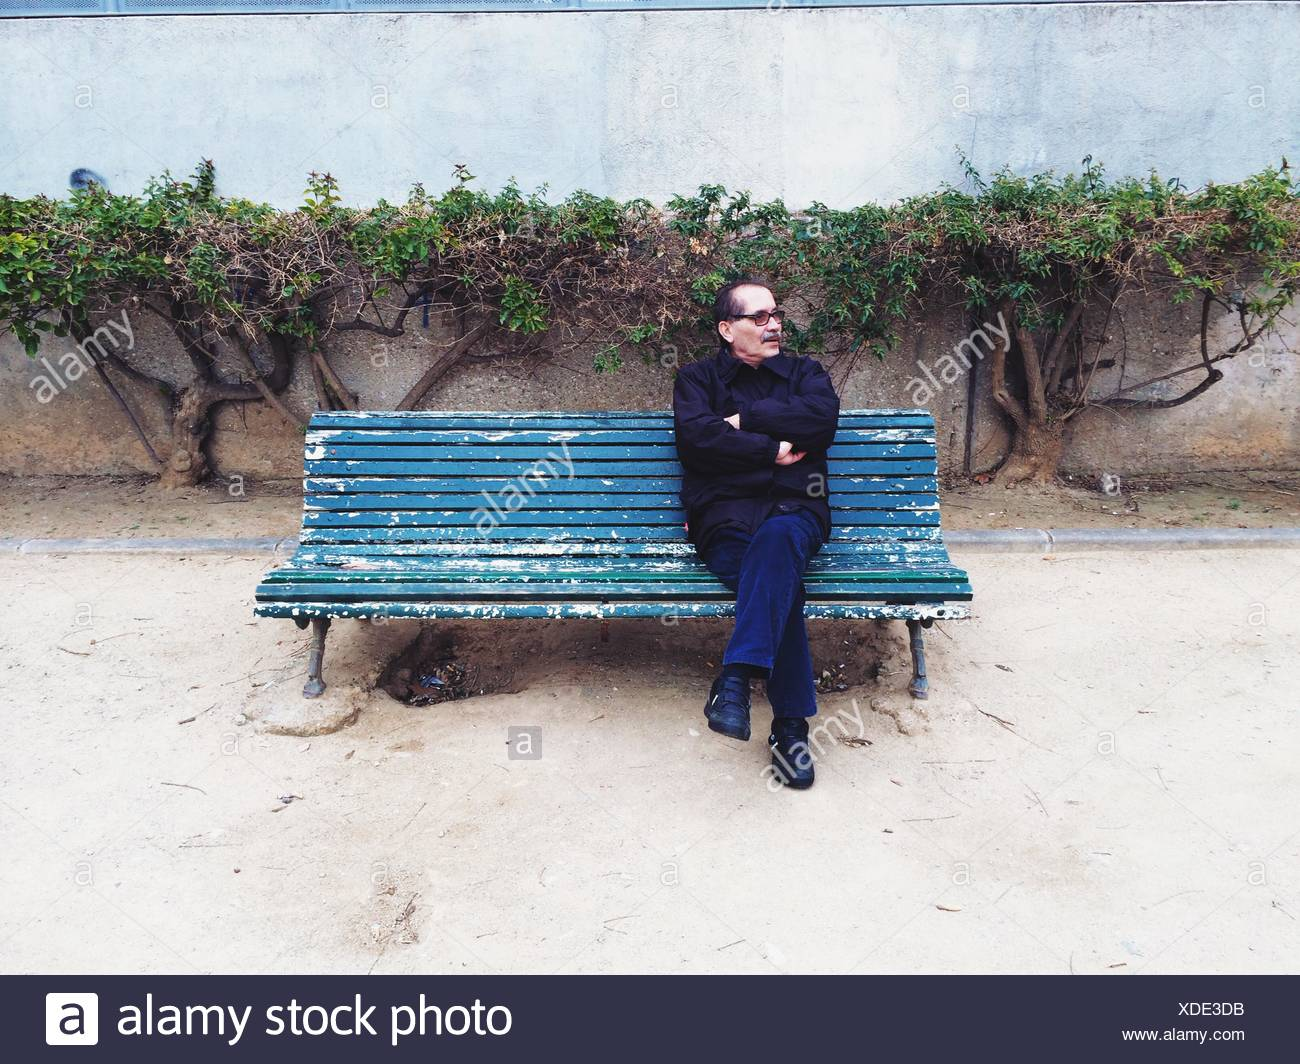 Full Length Of Mature Man Looking Away While Relaxing On Park Bench - Stock Image